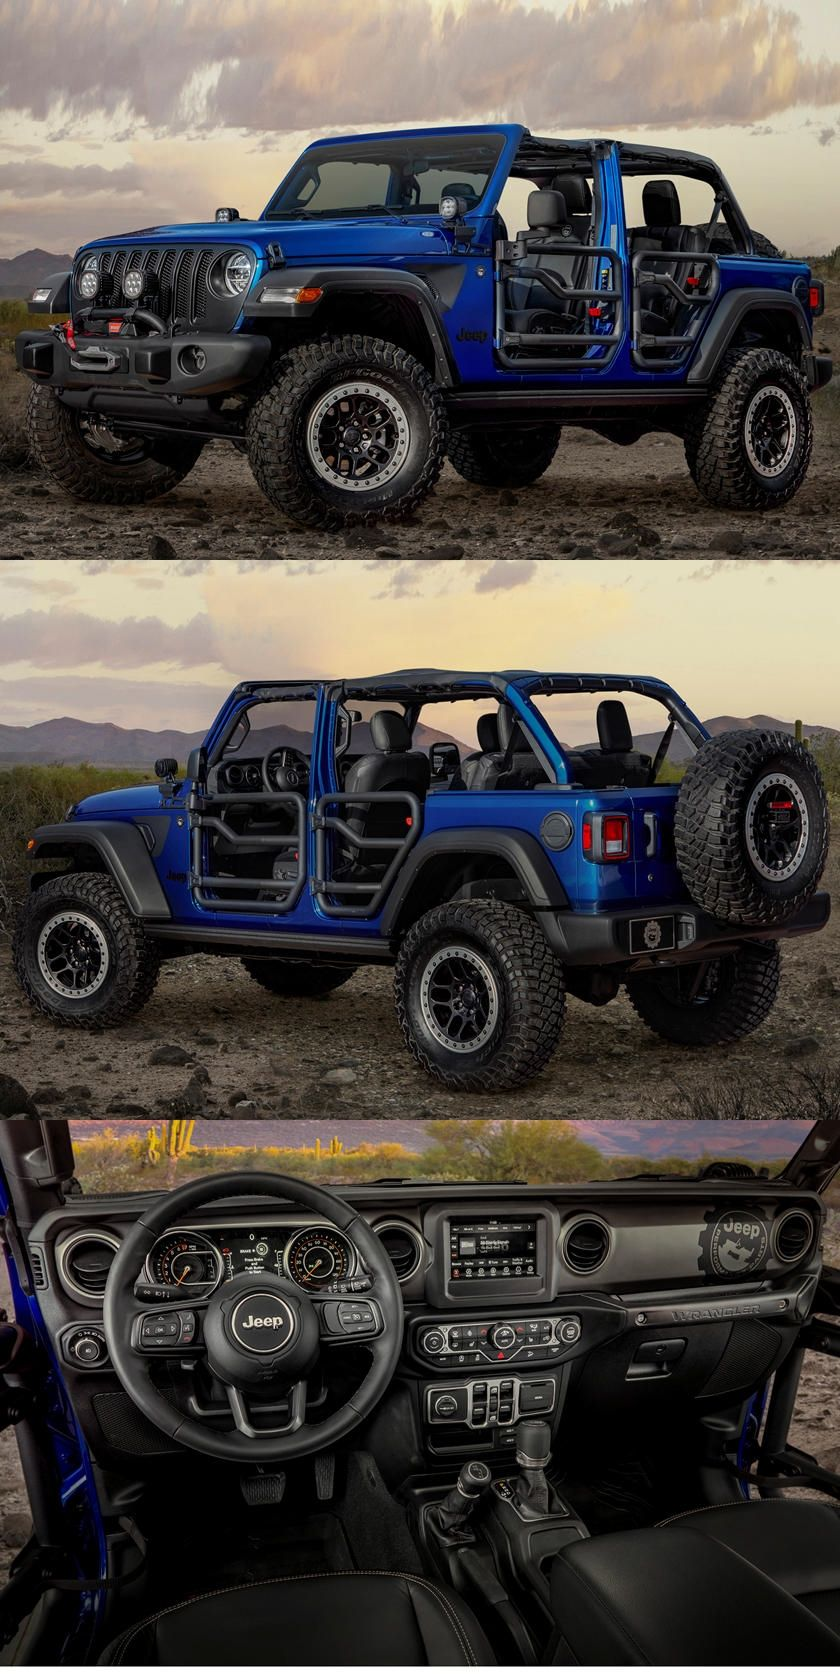 Jeep Wrangler Jpp 20 Shows Off Everything Mopar Has To Offer In